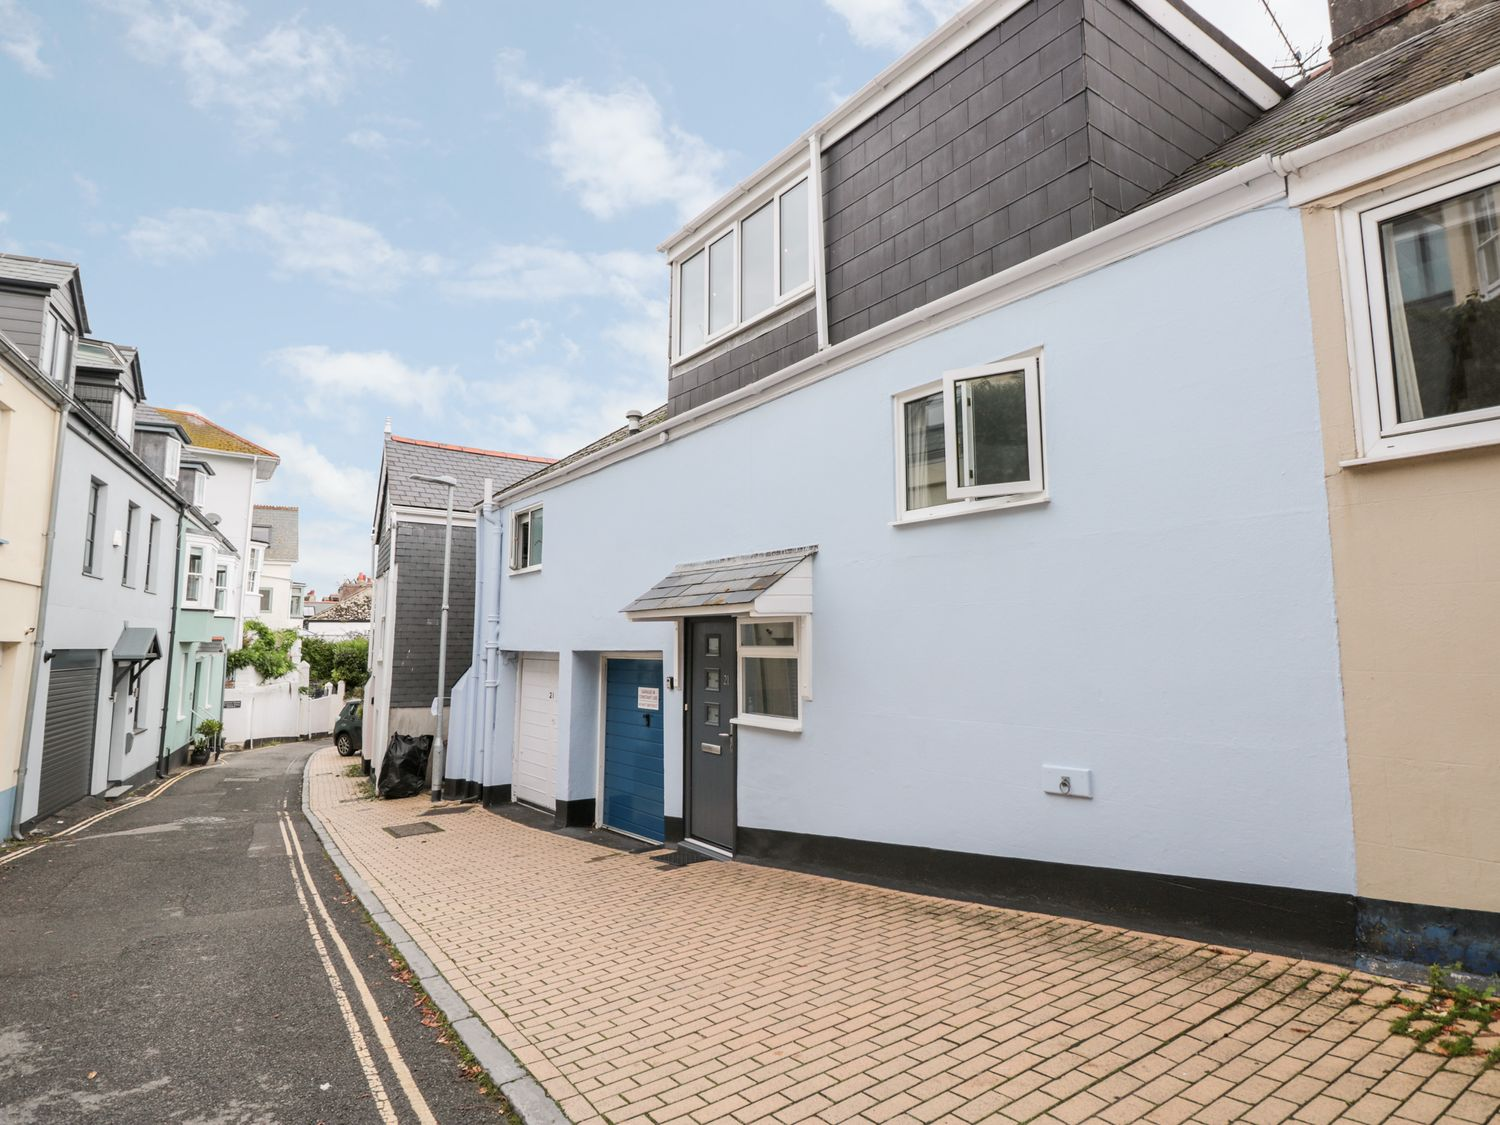 21 Above Town in Dartmouth - sleeps 6 people